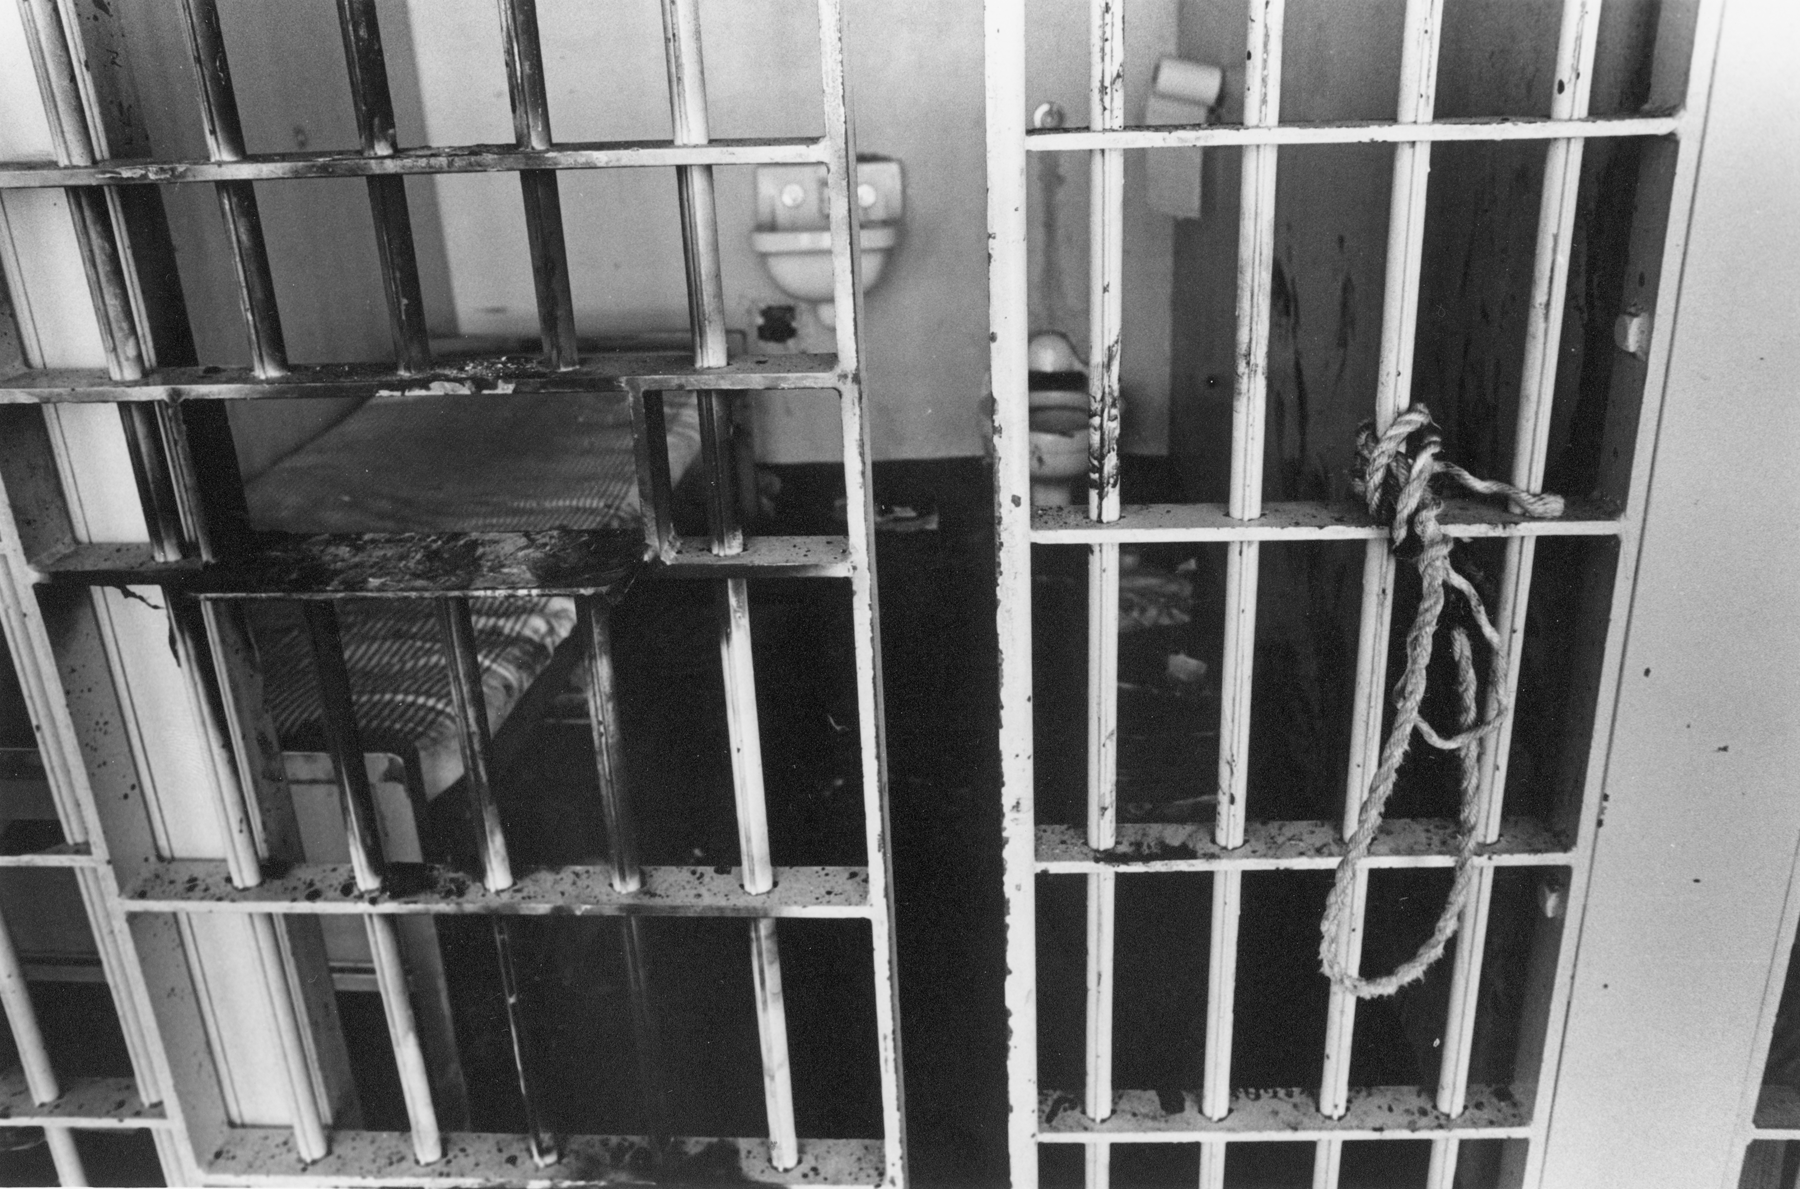 sante fe prison riot This article about former waupun prison guard harvey winans and the prison riot in santa fe prison was published in the new york times in 1981.